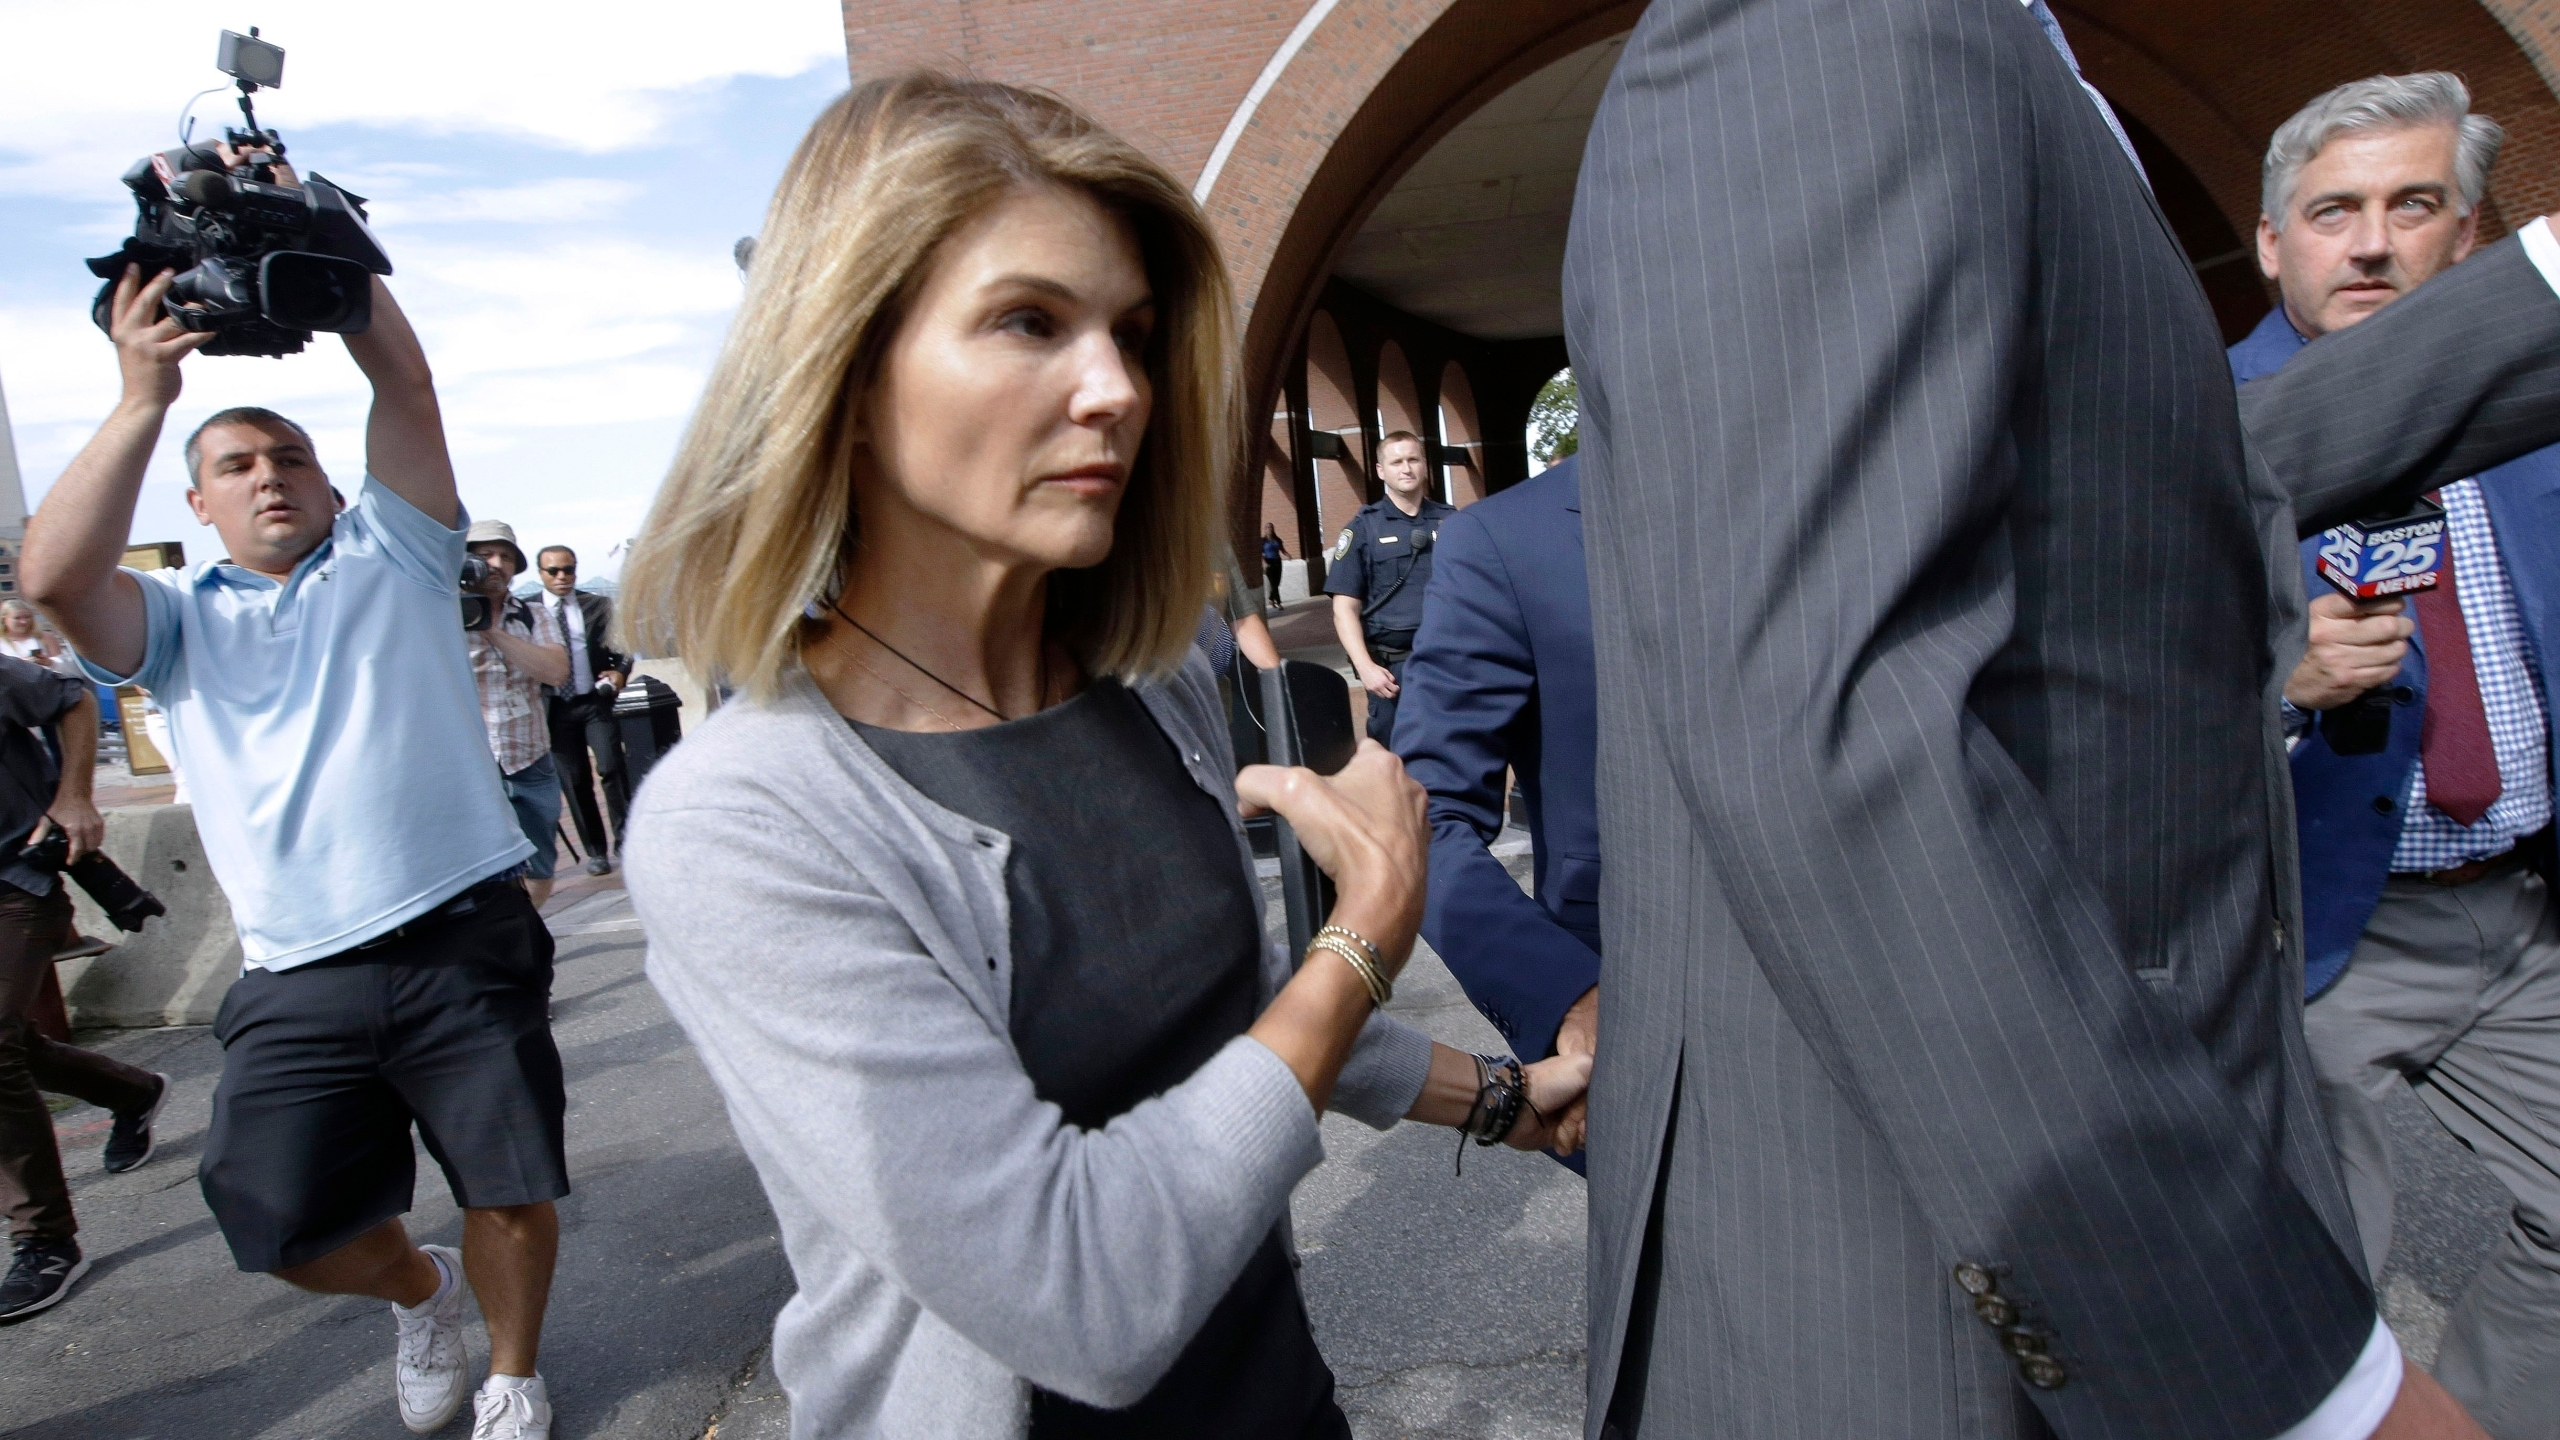 Lori Loughlin Other Parents Charged Again In College Scheme Wvns